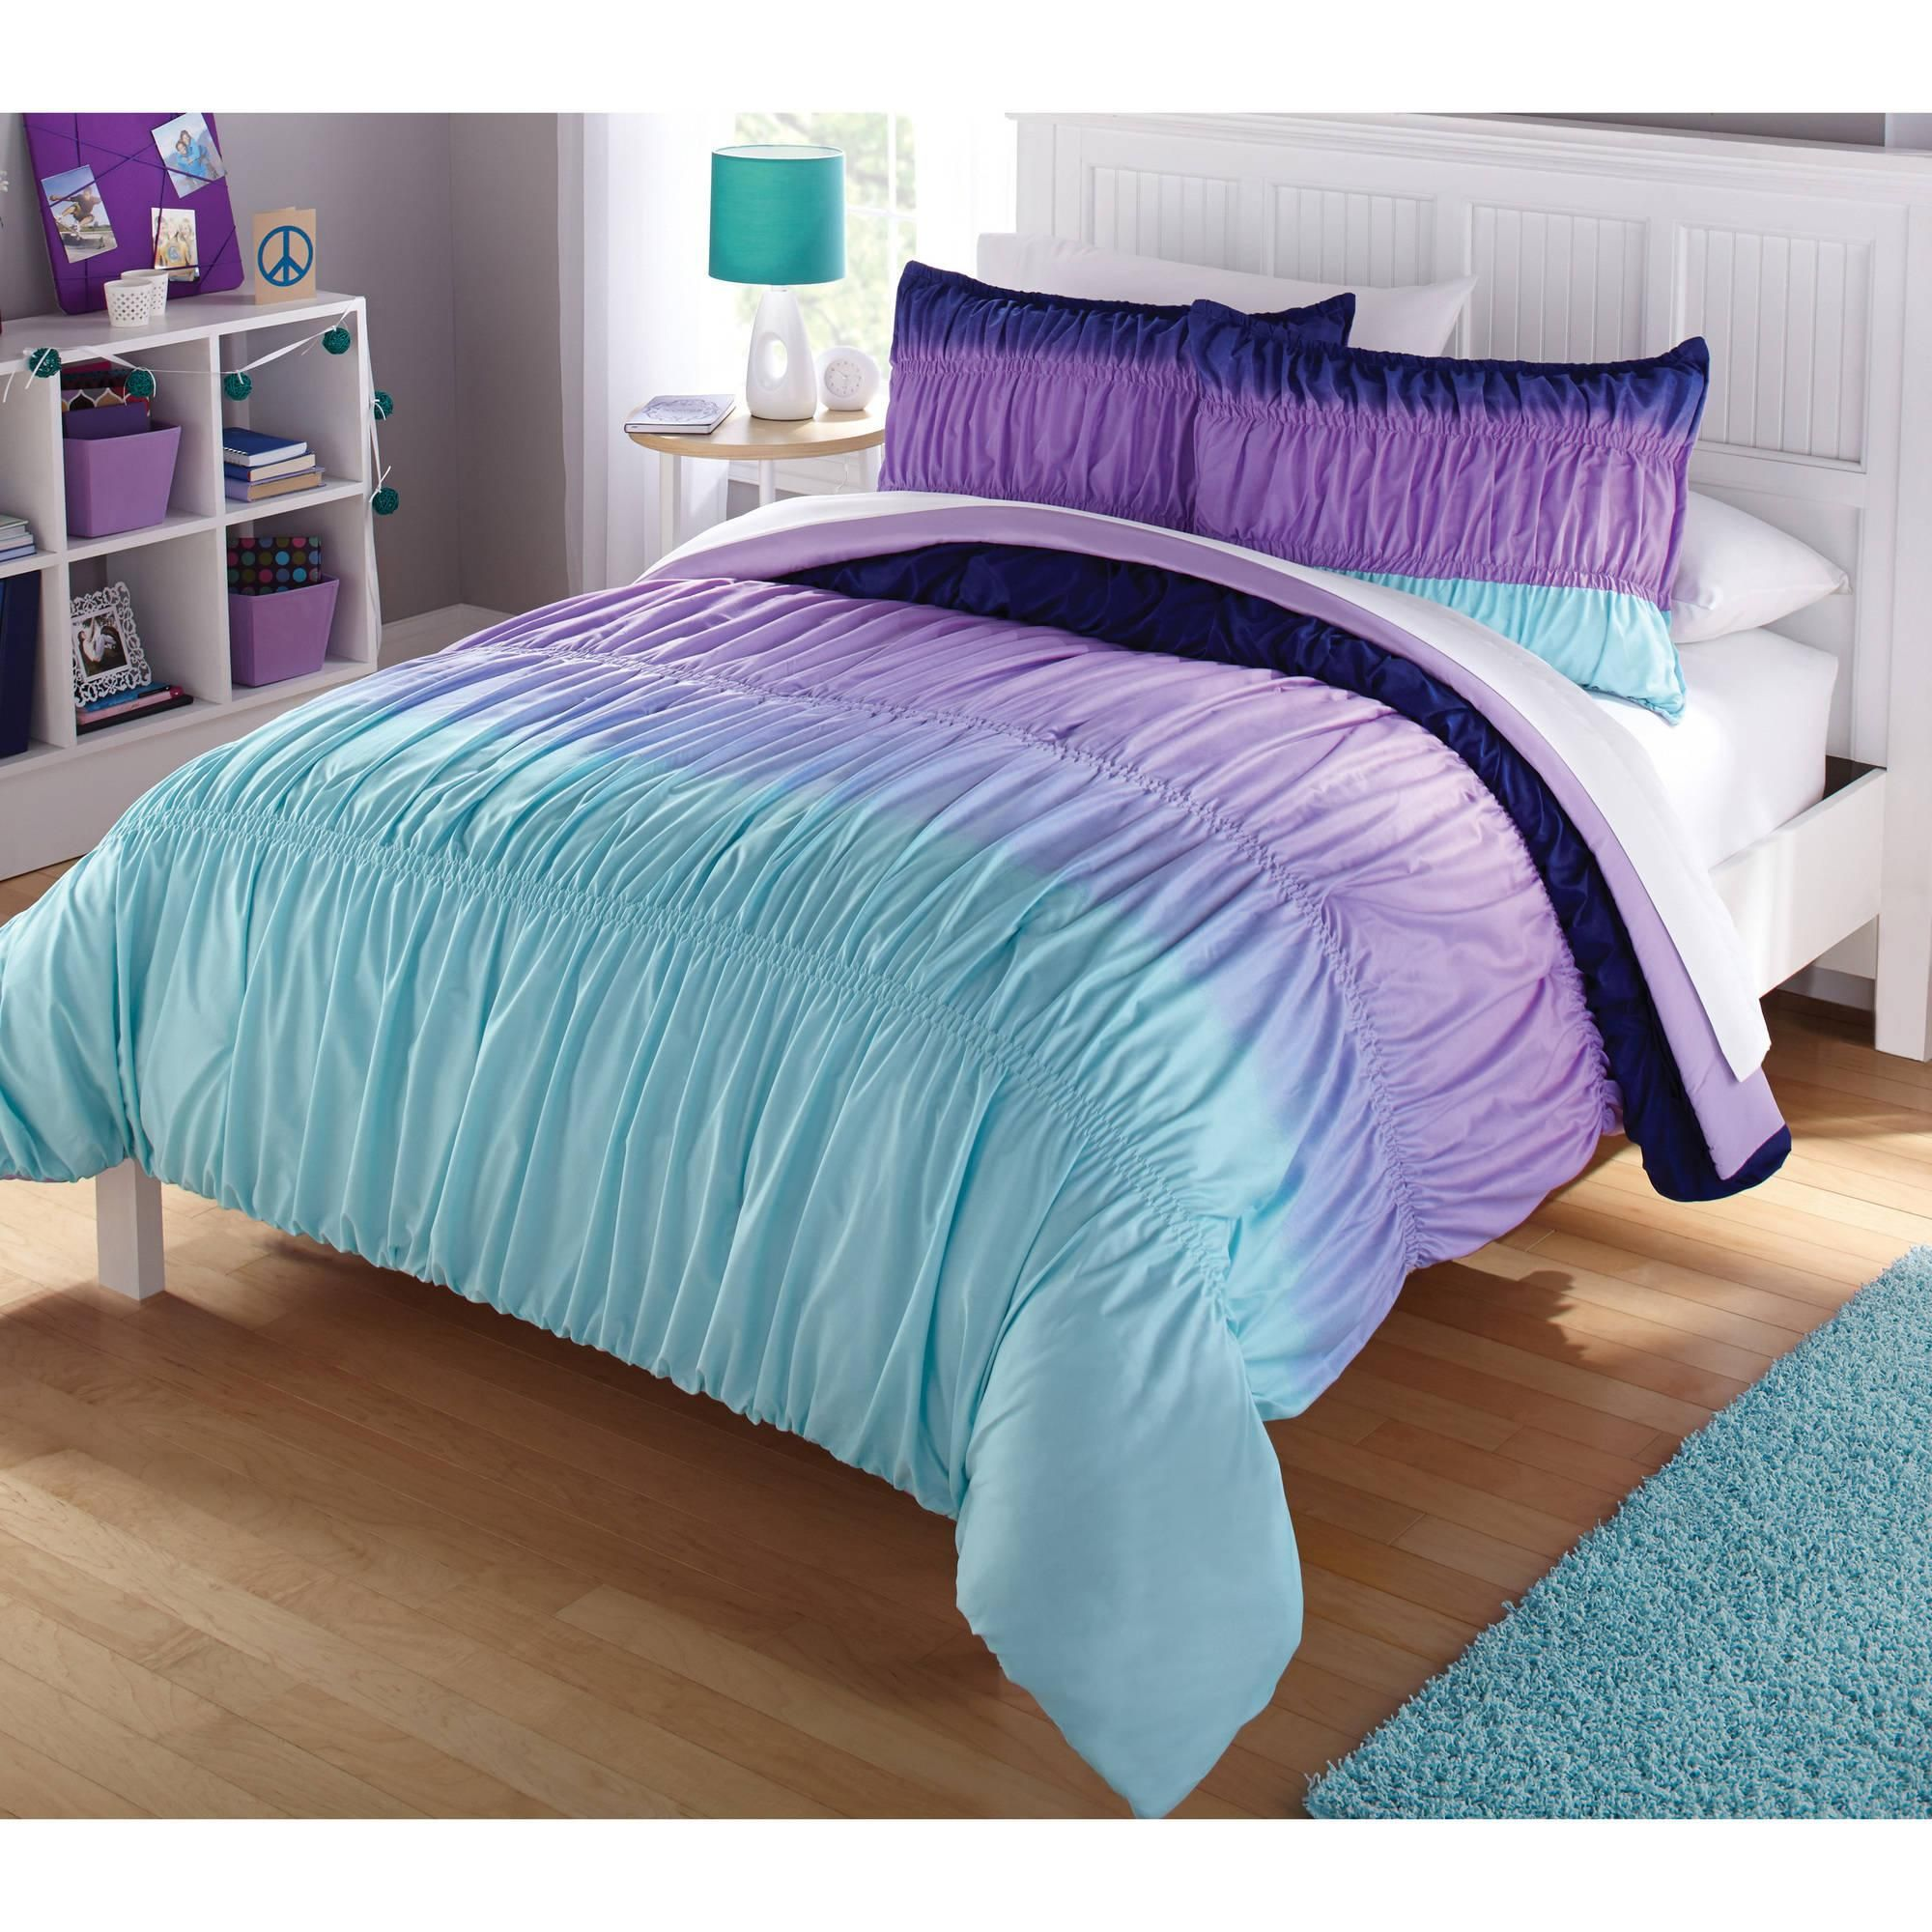 Blue bedroom sets for girls - Comforter Sets Puff Bedroom Ideas Girls Bedroom Dream Bedroom Mermaid Bedroom Mermaid Bedding Aqua Blue Purple Ombre